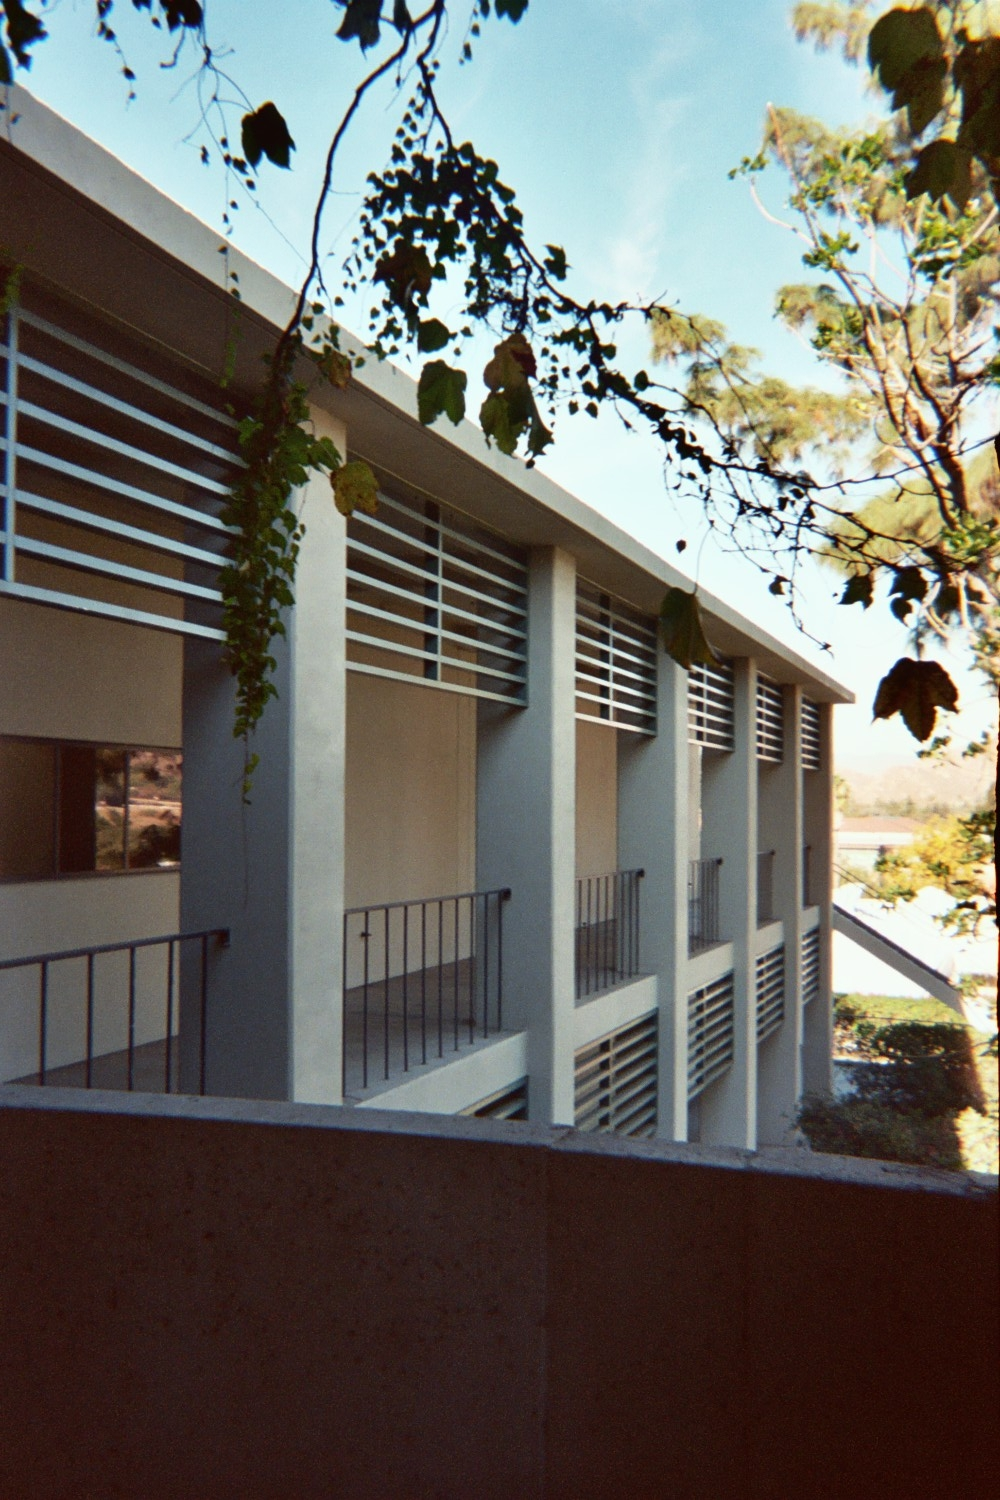 03.12.24-building balcony.JPG